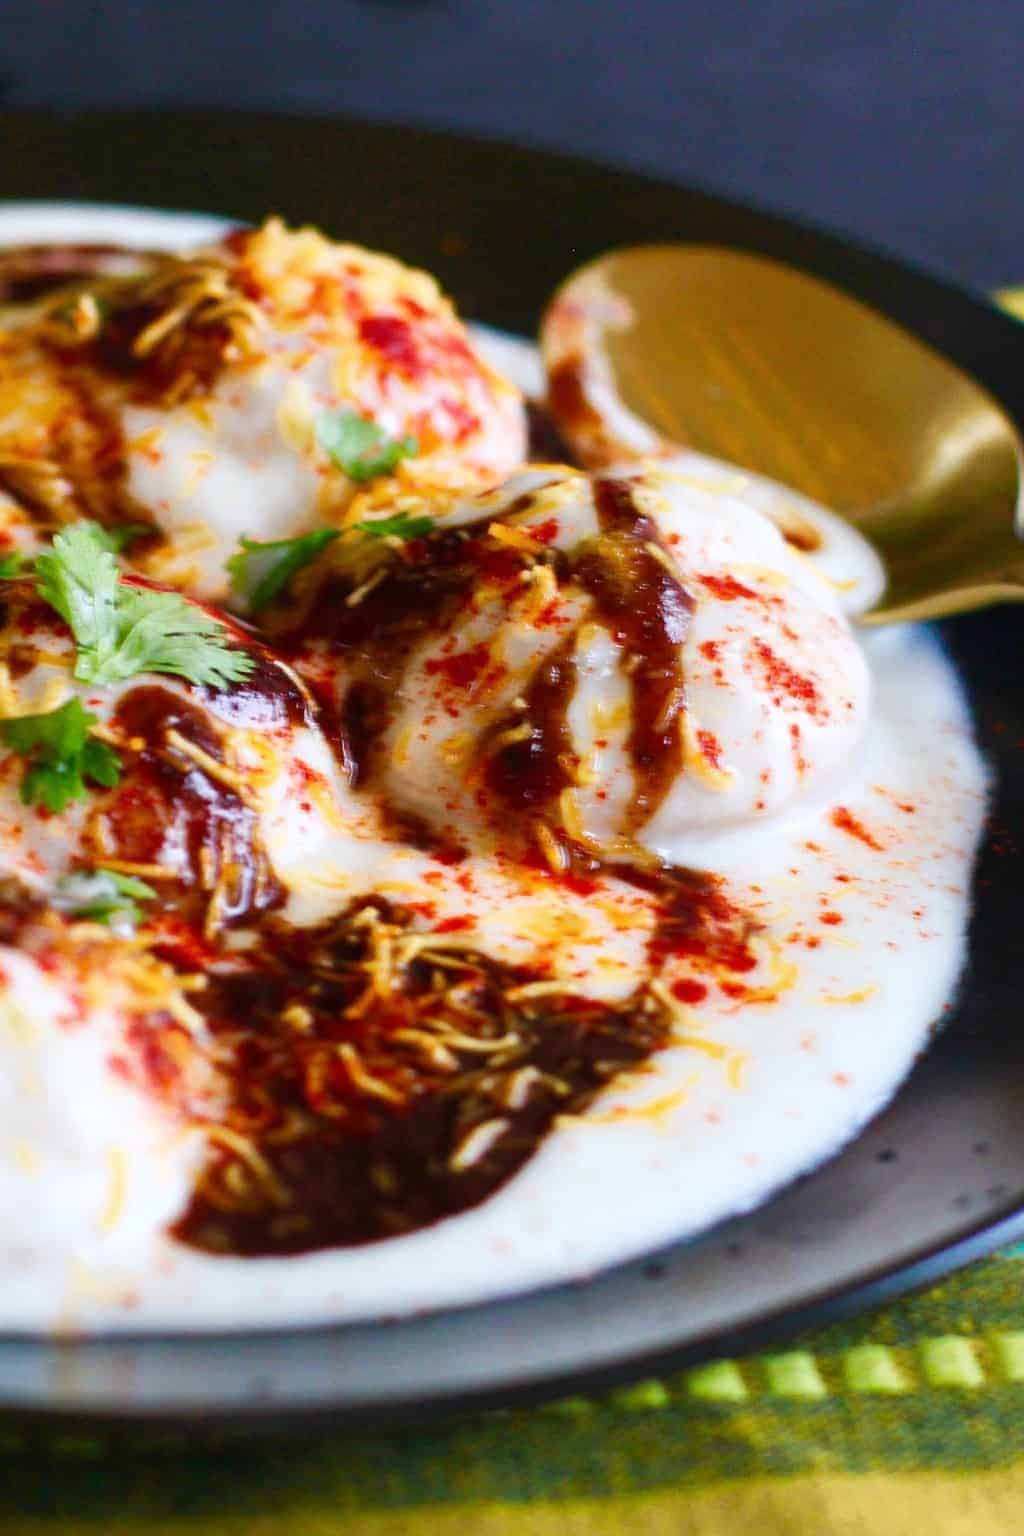 DahiVada - Soft, melt-in-your-mouth, lentil dumplings dunked in lushyogurt, and garnished with sweet and tangy tamarind-date chutney, red chili powder, cumin-coriander powder and crunchy sev.